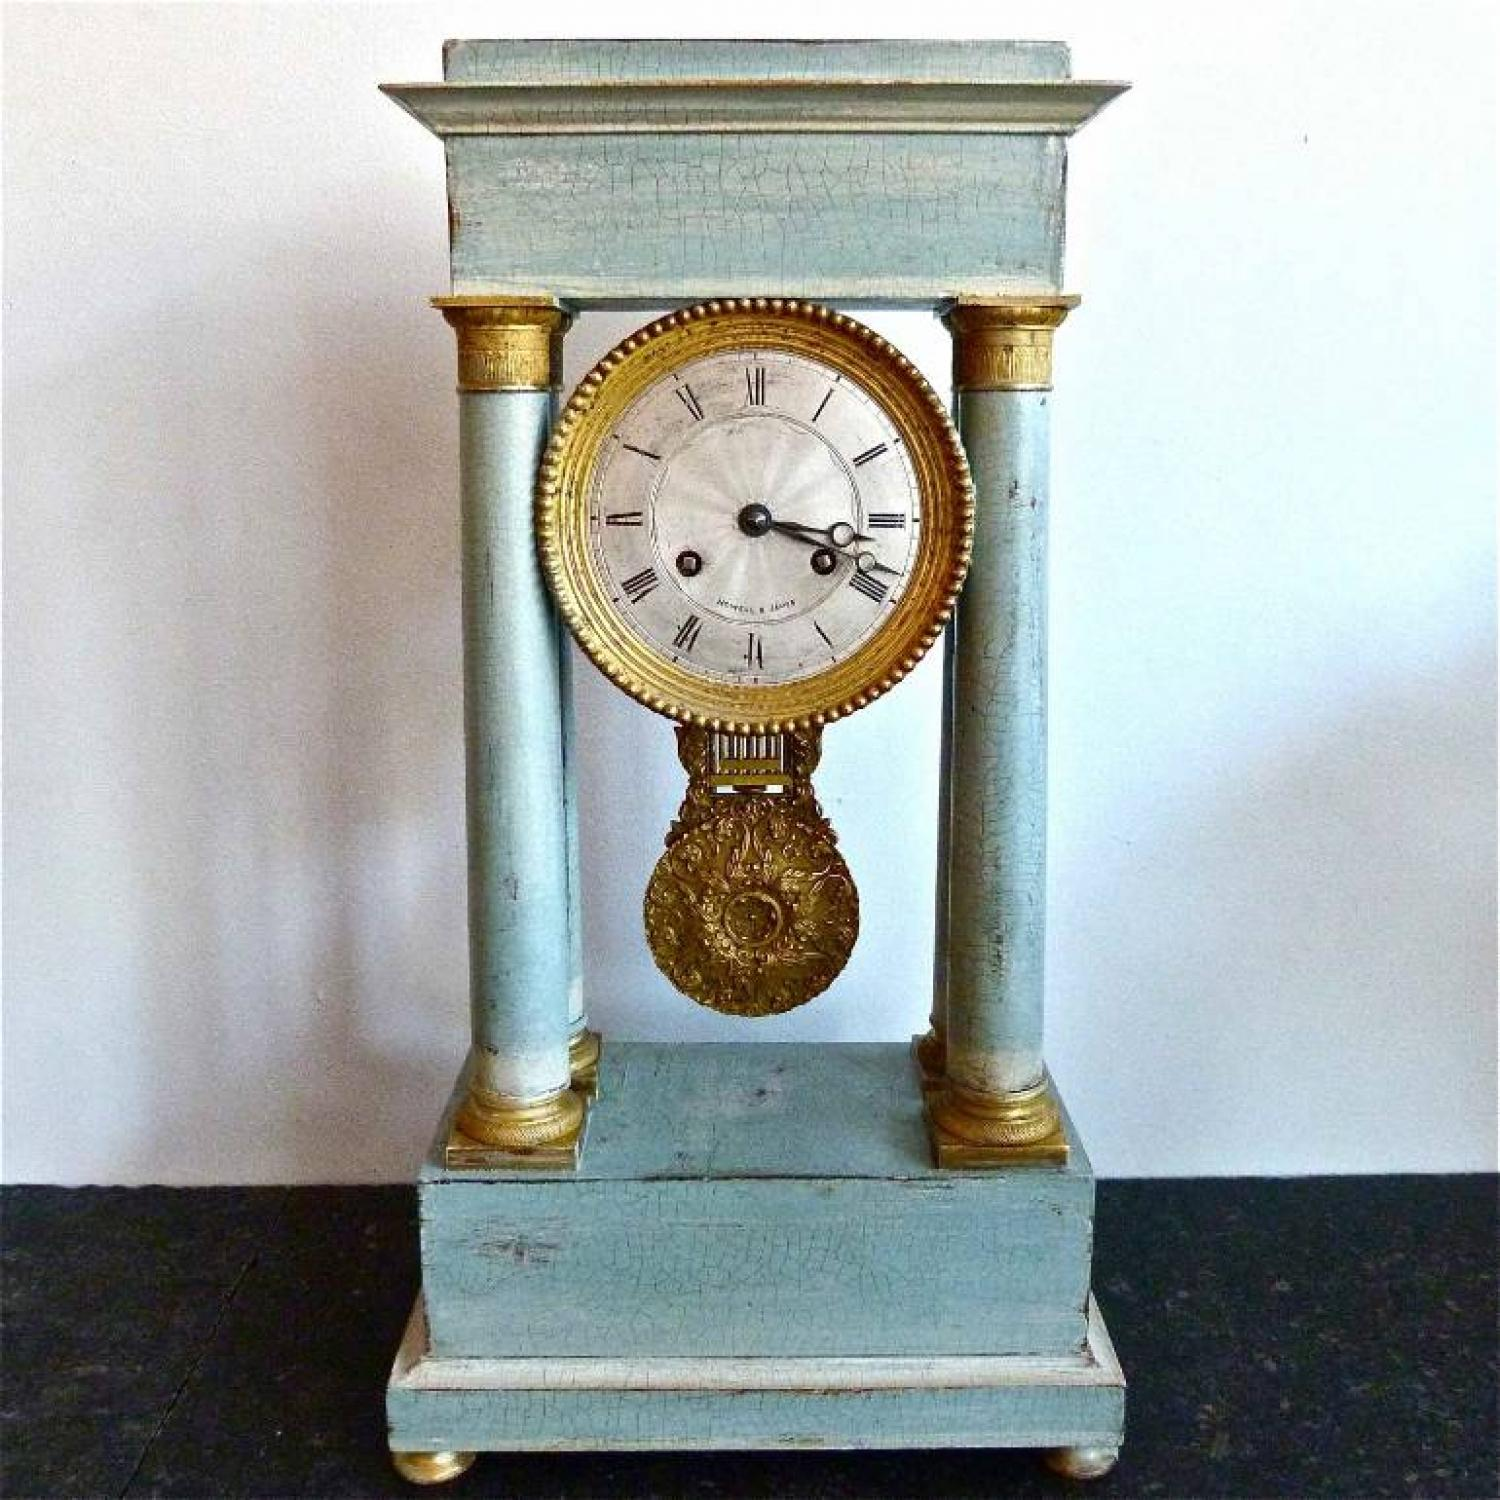 19TH CENTURY FRENCH GRIDIRON PENDULUM MANTLE CLOCK